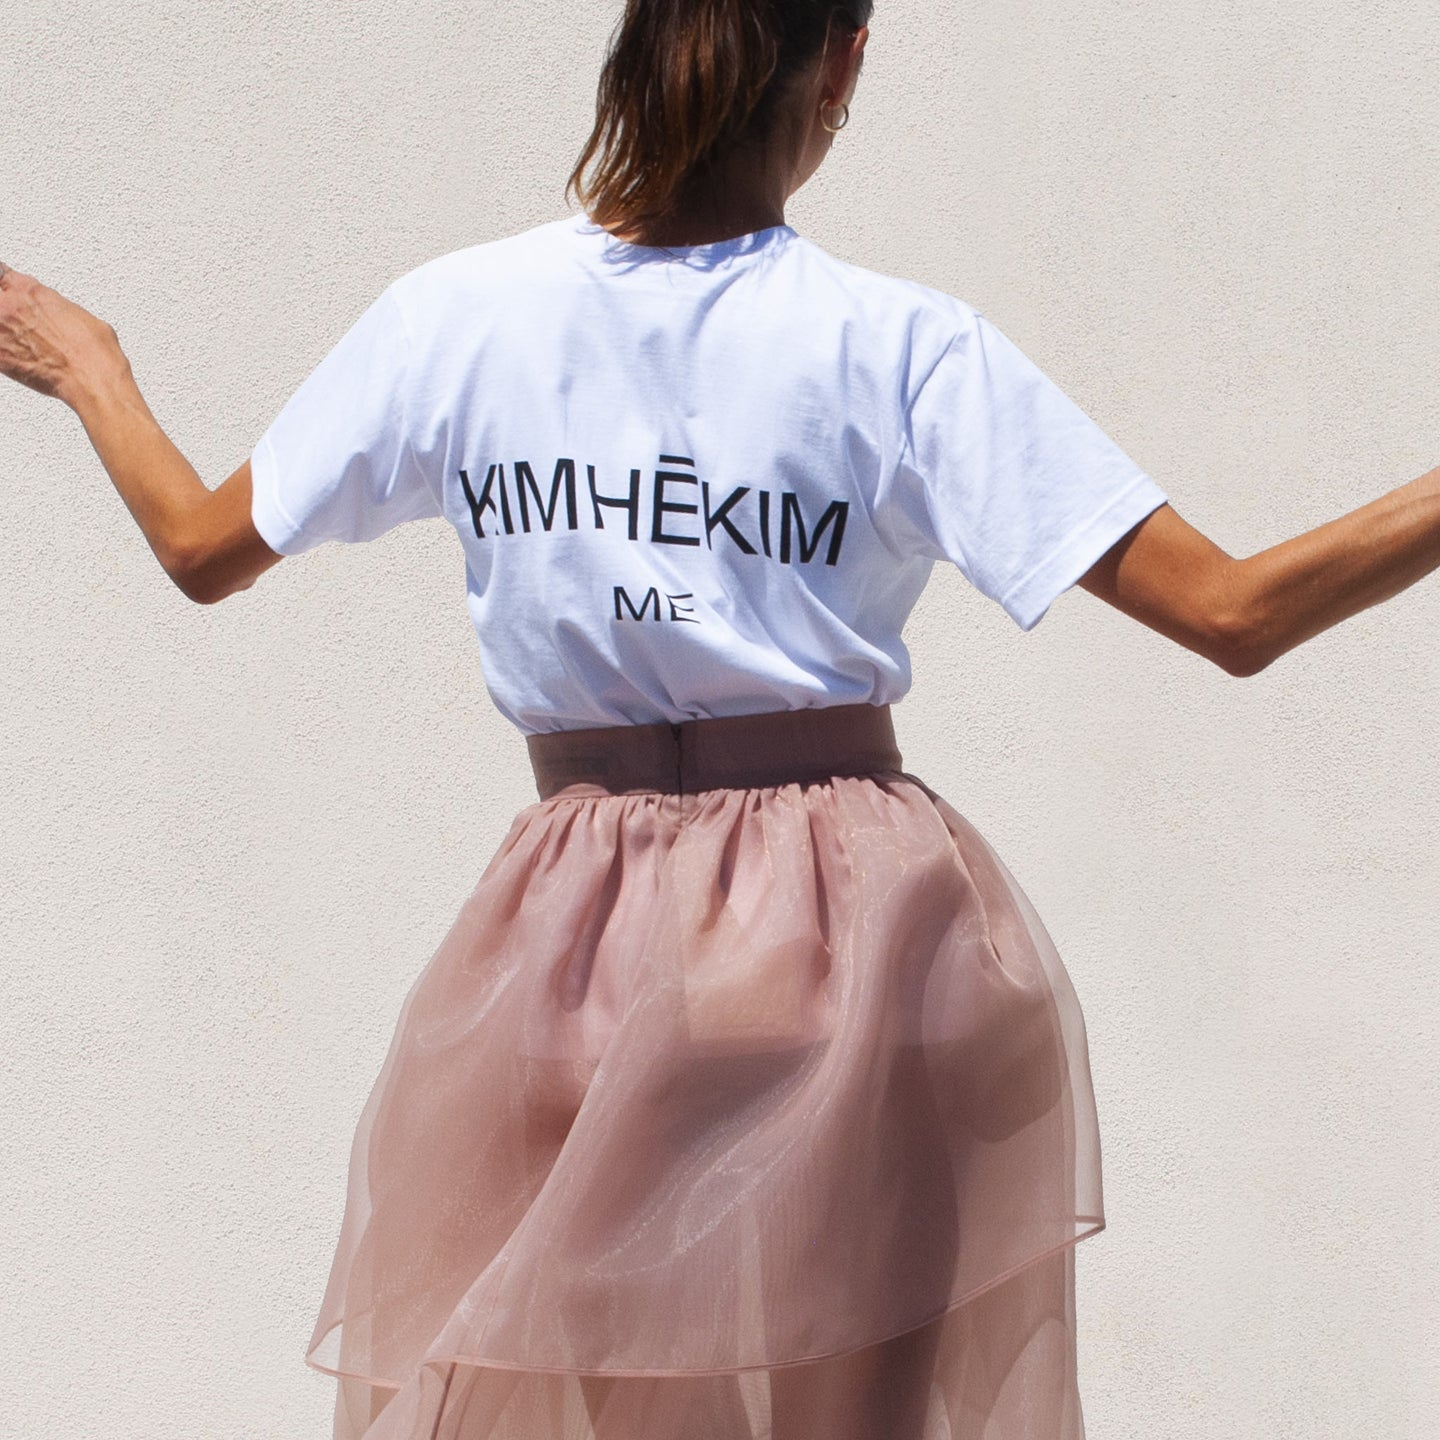 Kimhekim - Me Logo T-Shirt, back view, available at LCD.